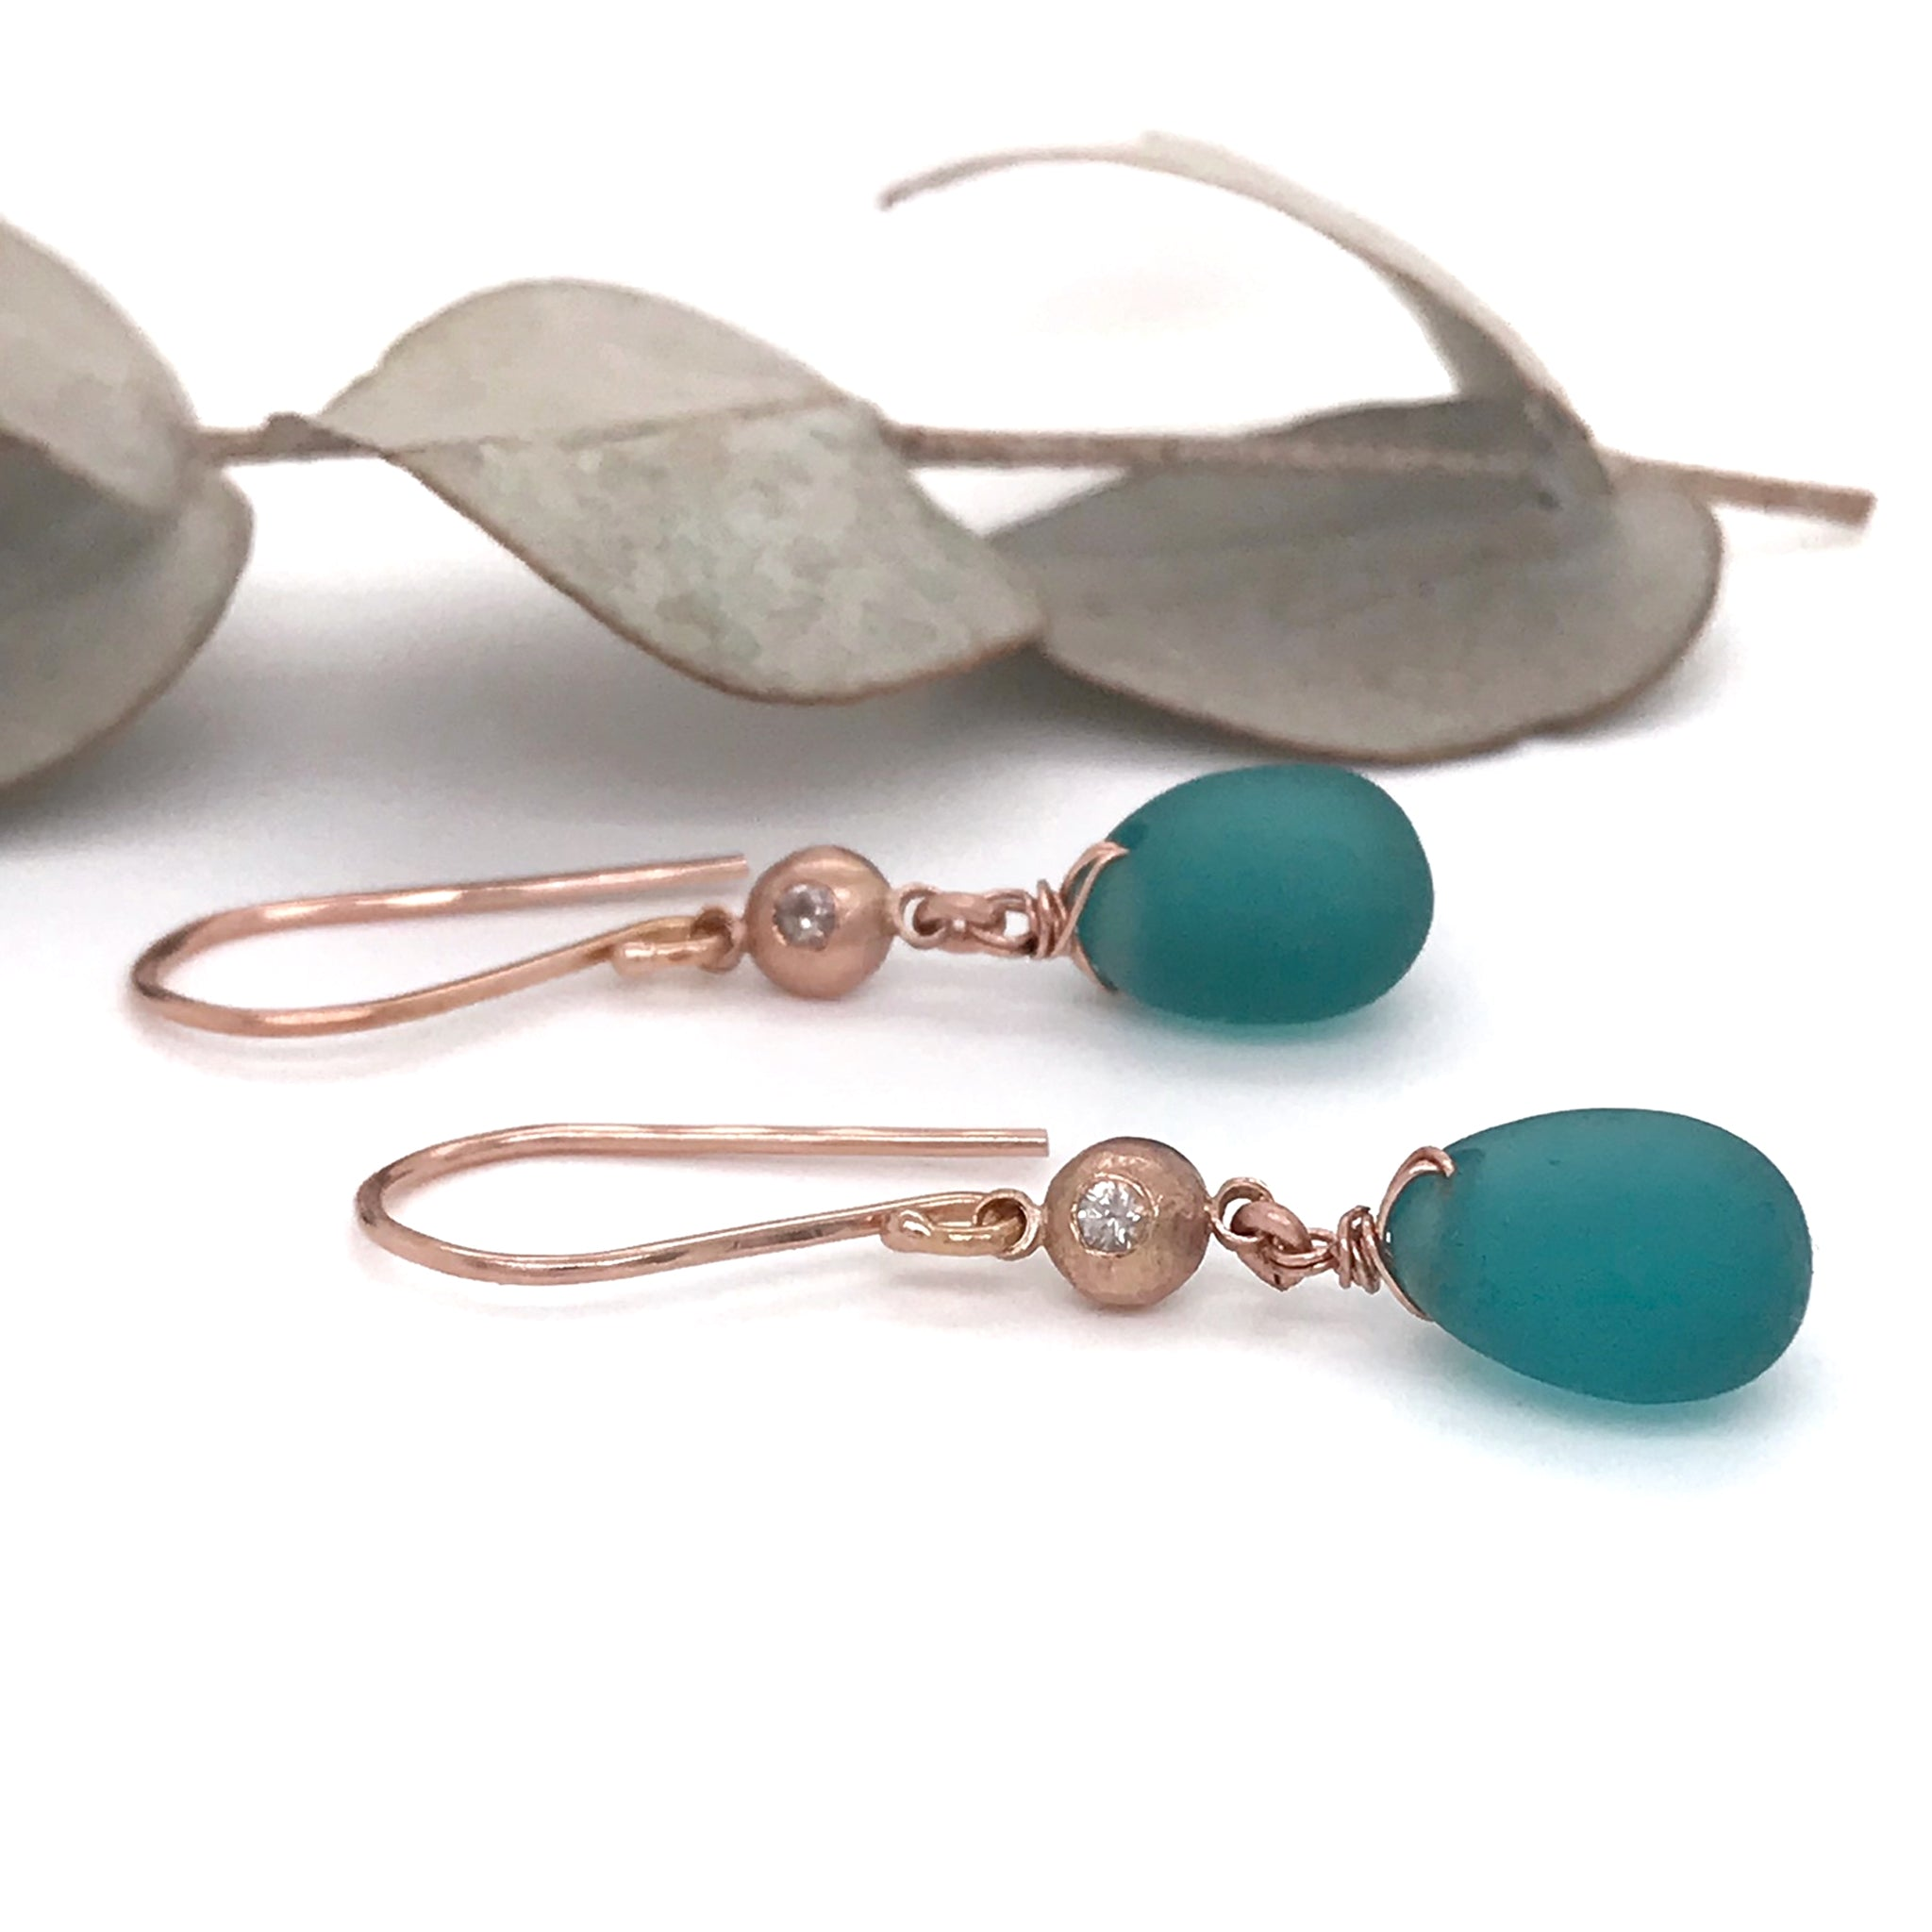 rose-gold-earrings-with-teal-beach-glass-and-white-sapphires-kriket-broadhurst-jewelry-Sydney